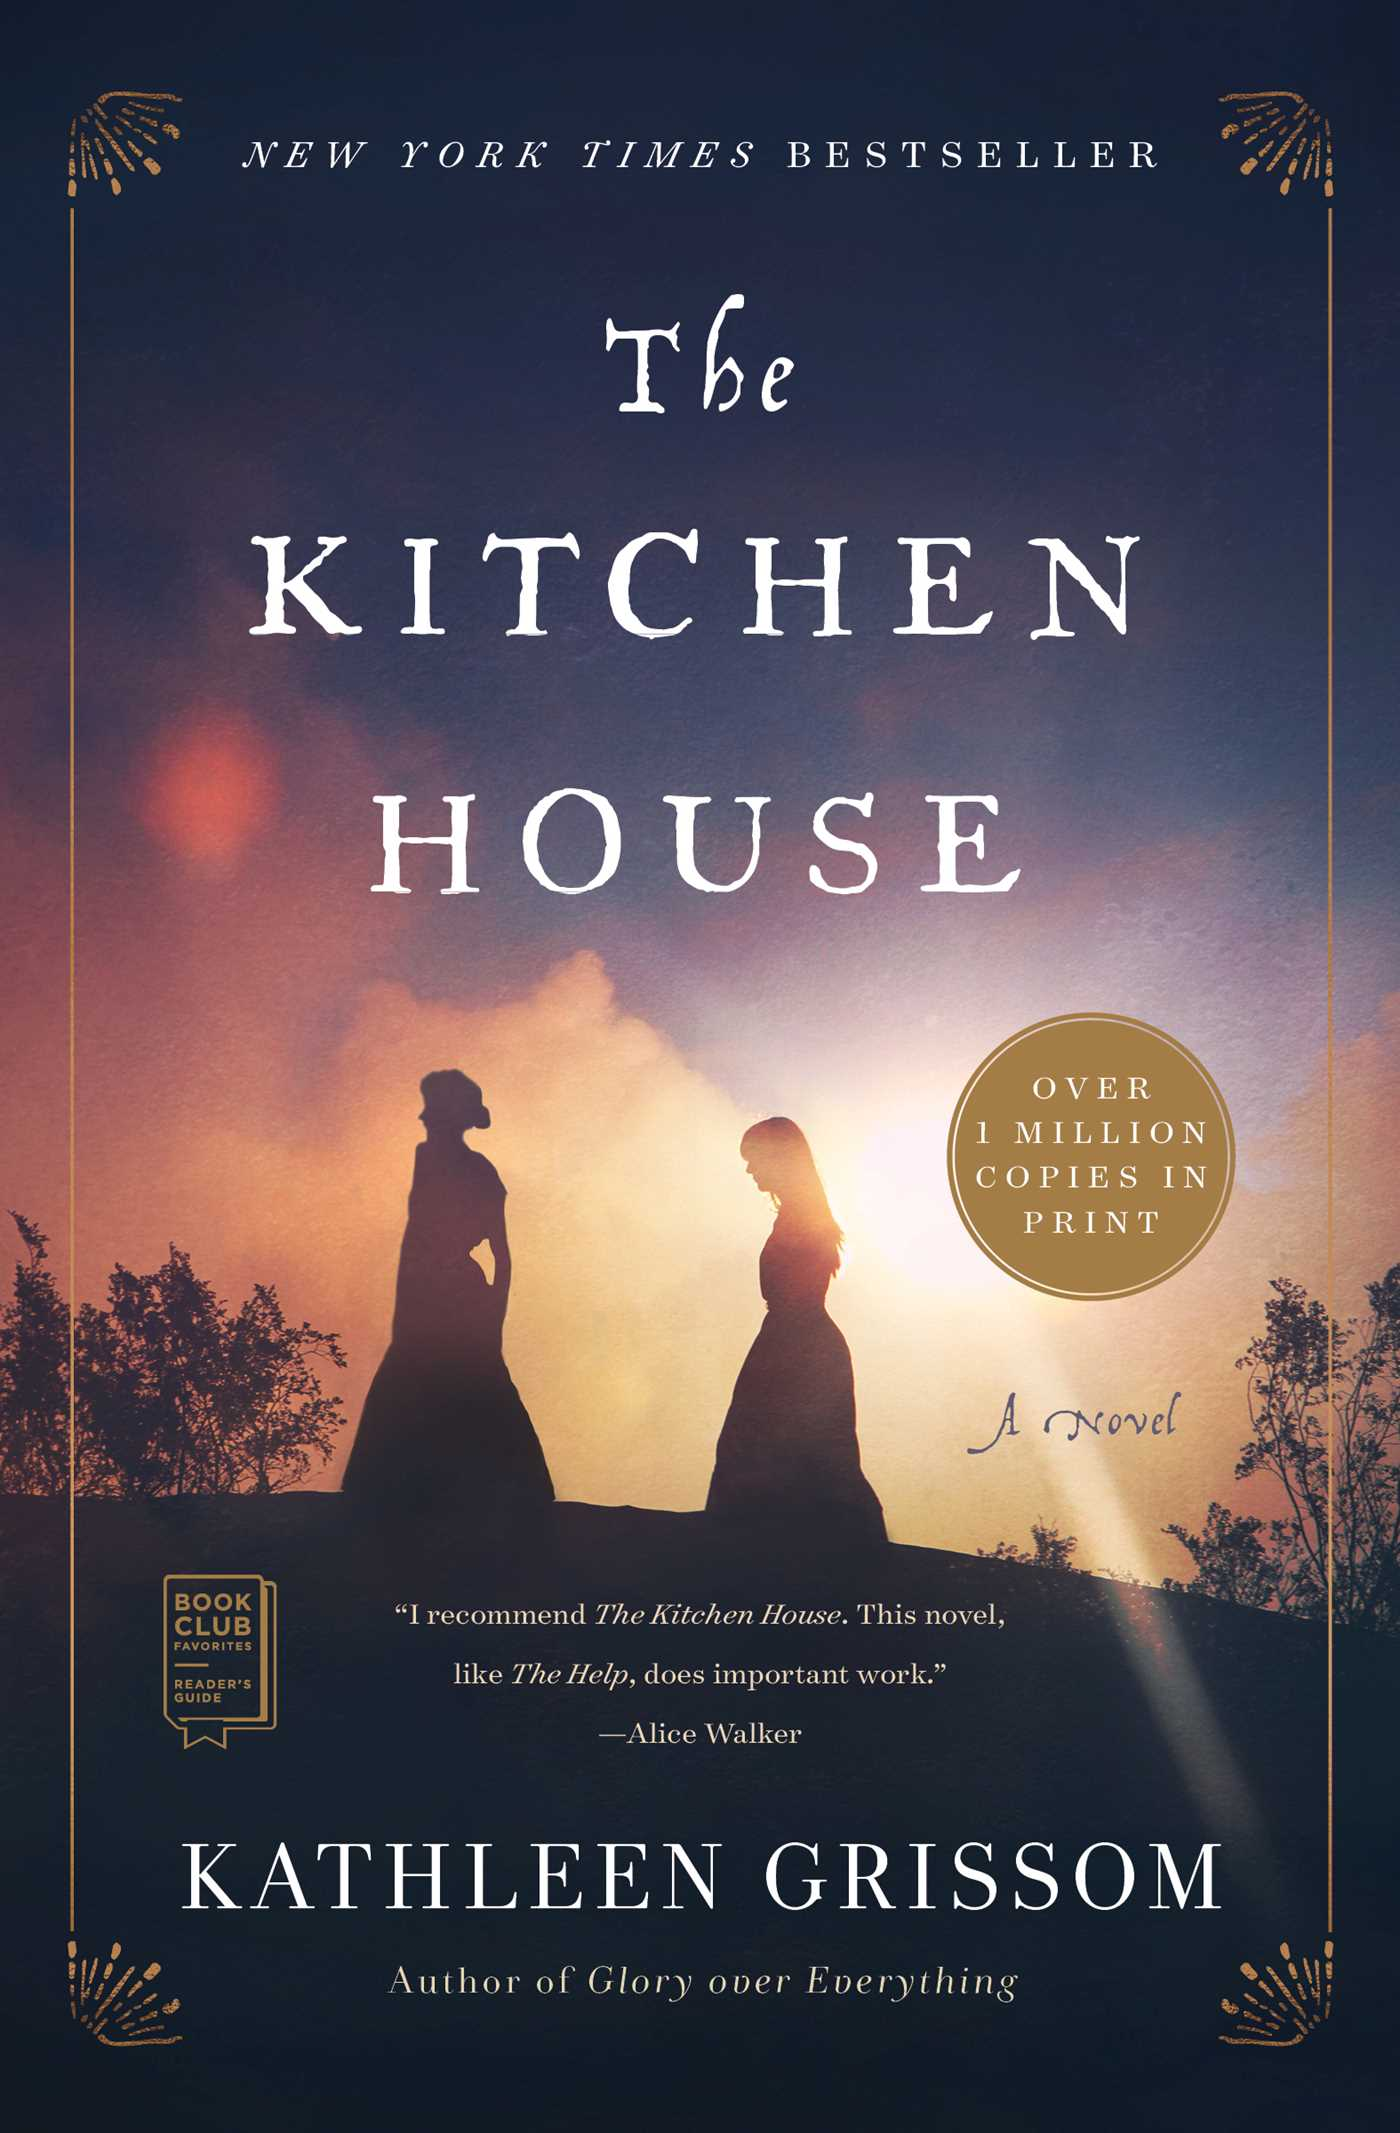 Image result for 'The Kitchen House' by Kathleen Grissom.